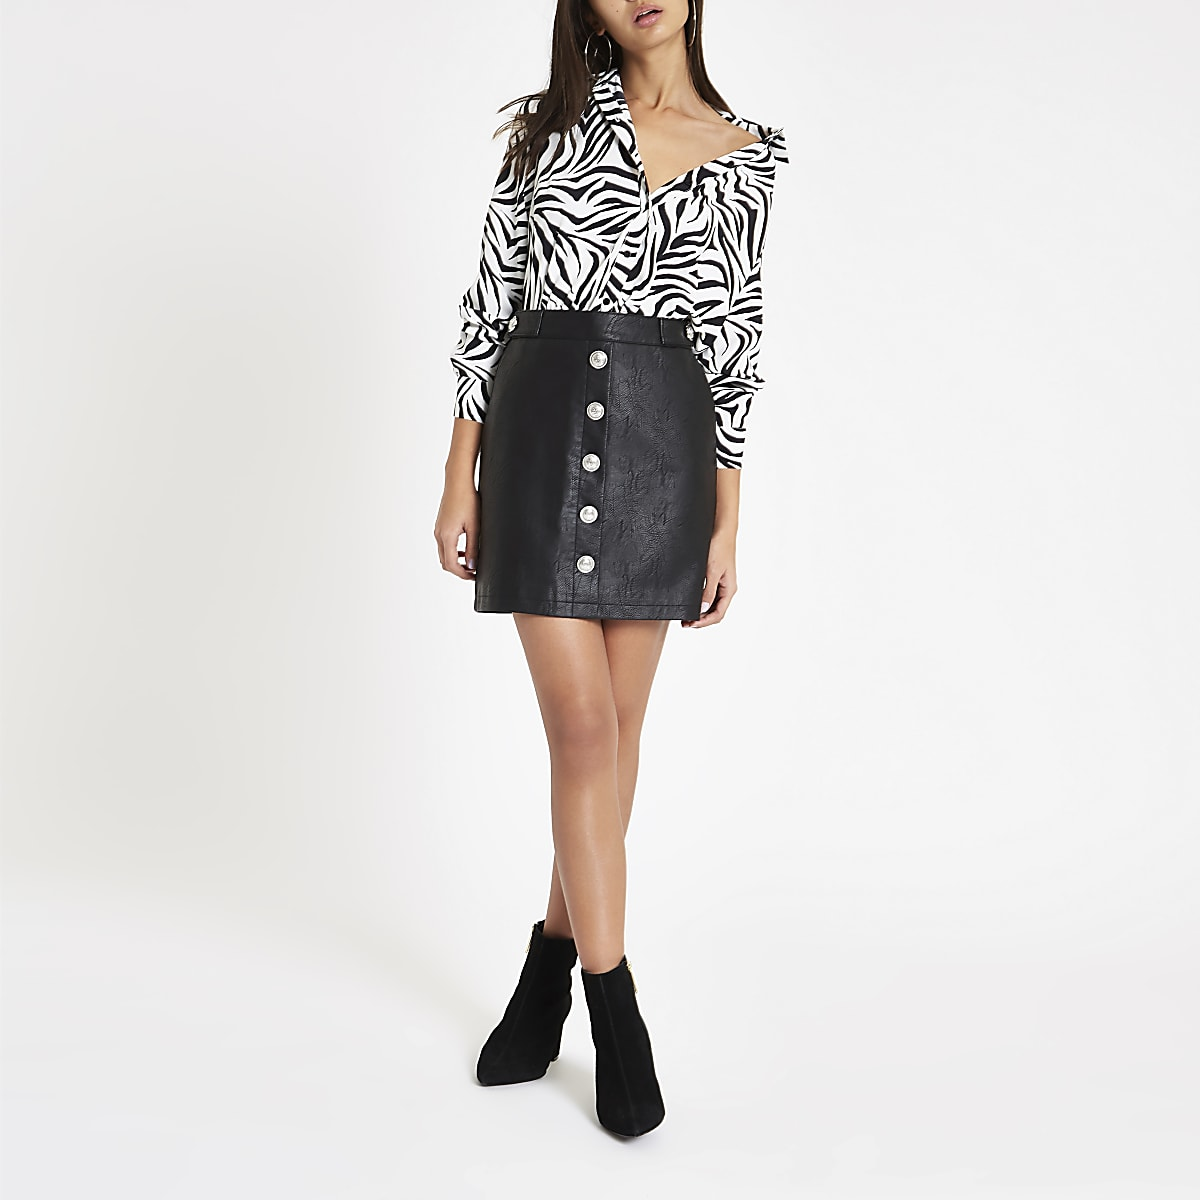 a989bf9be203 Black faux leather button front mini skirt - Mini Skirts - Skirts - women